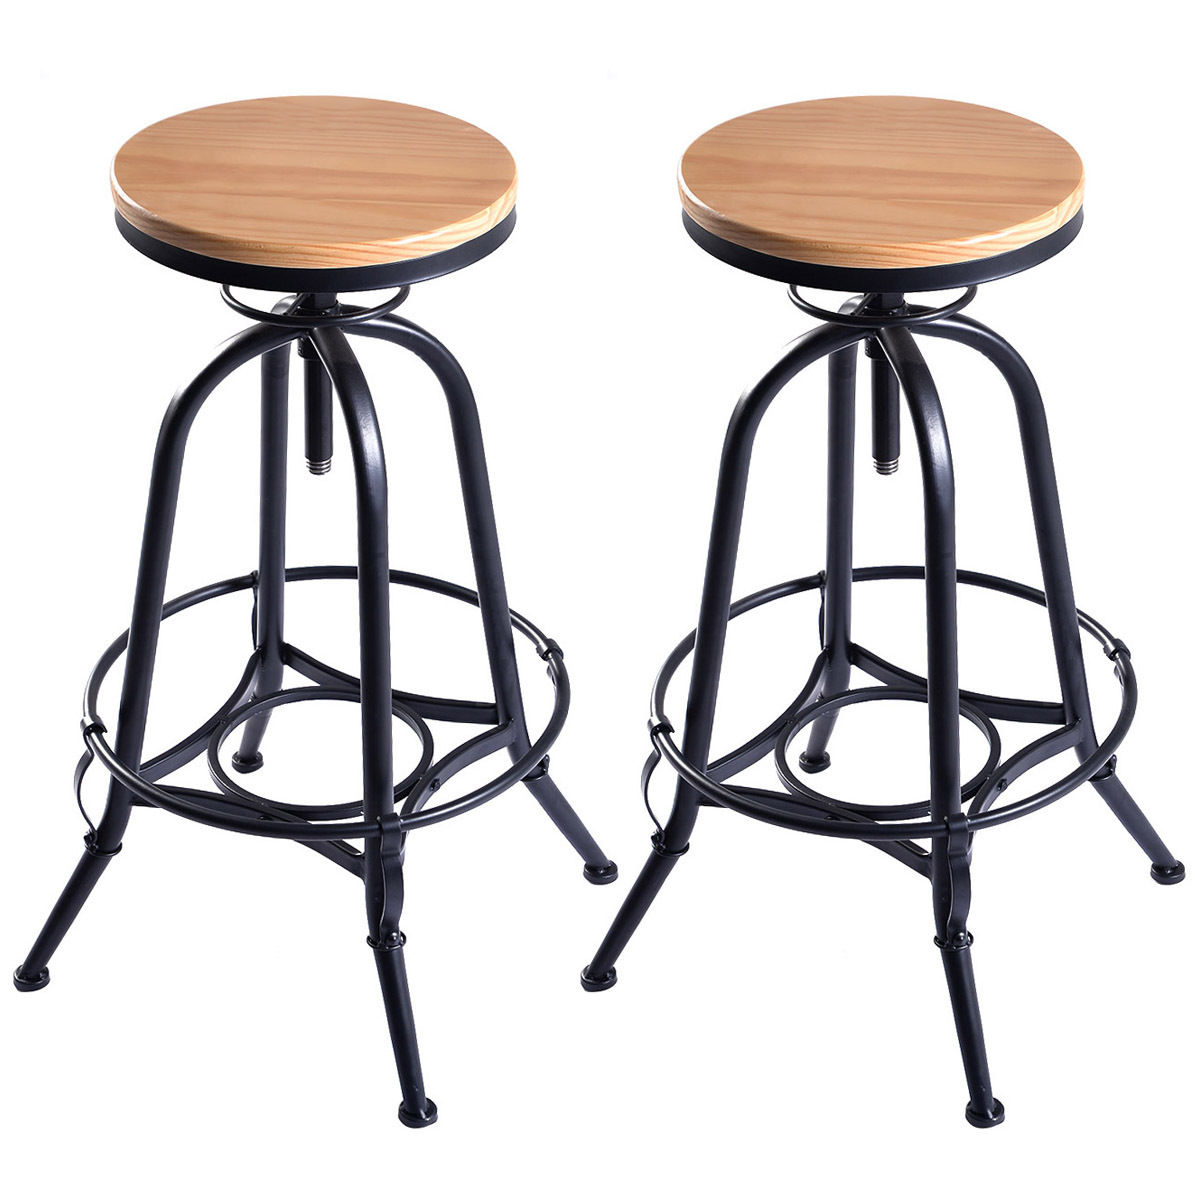 Giantex Set of 2 Vintage Bar Stools Industrial Wood Top Metal Design Pub Stool Chairs Adjustable Swivel Bar Stool 2*HW51305